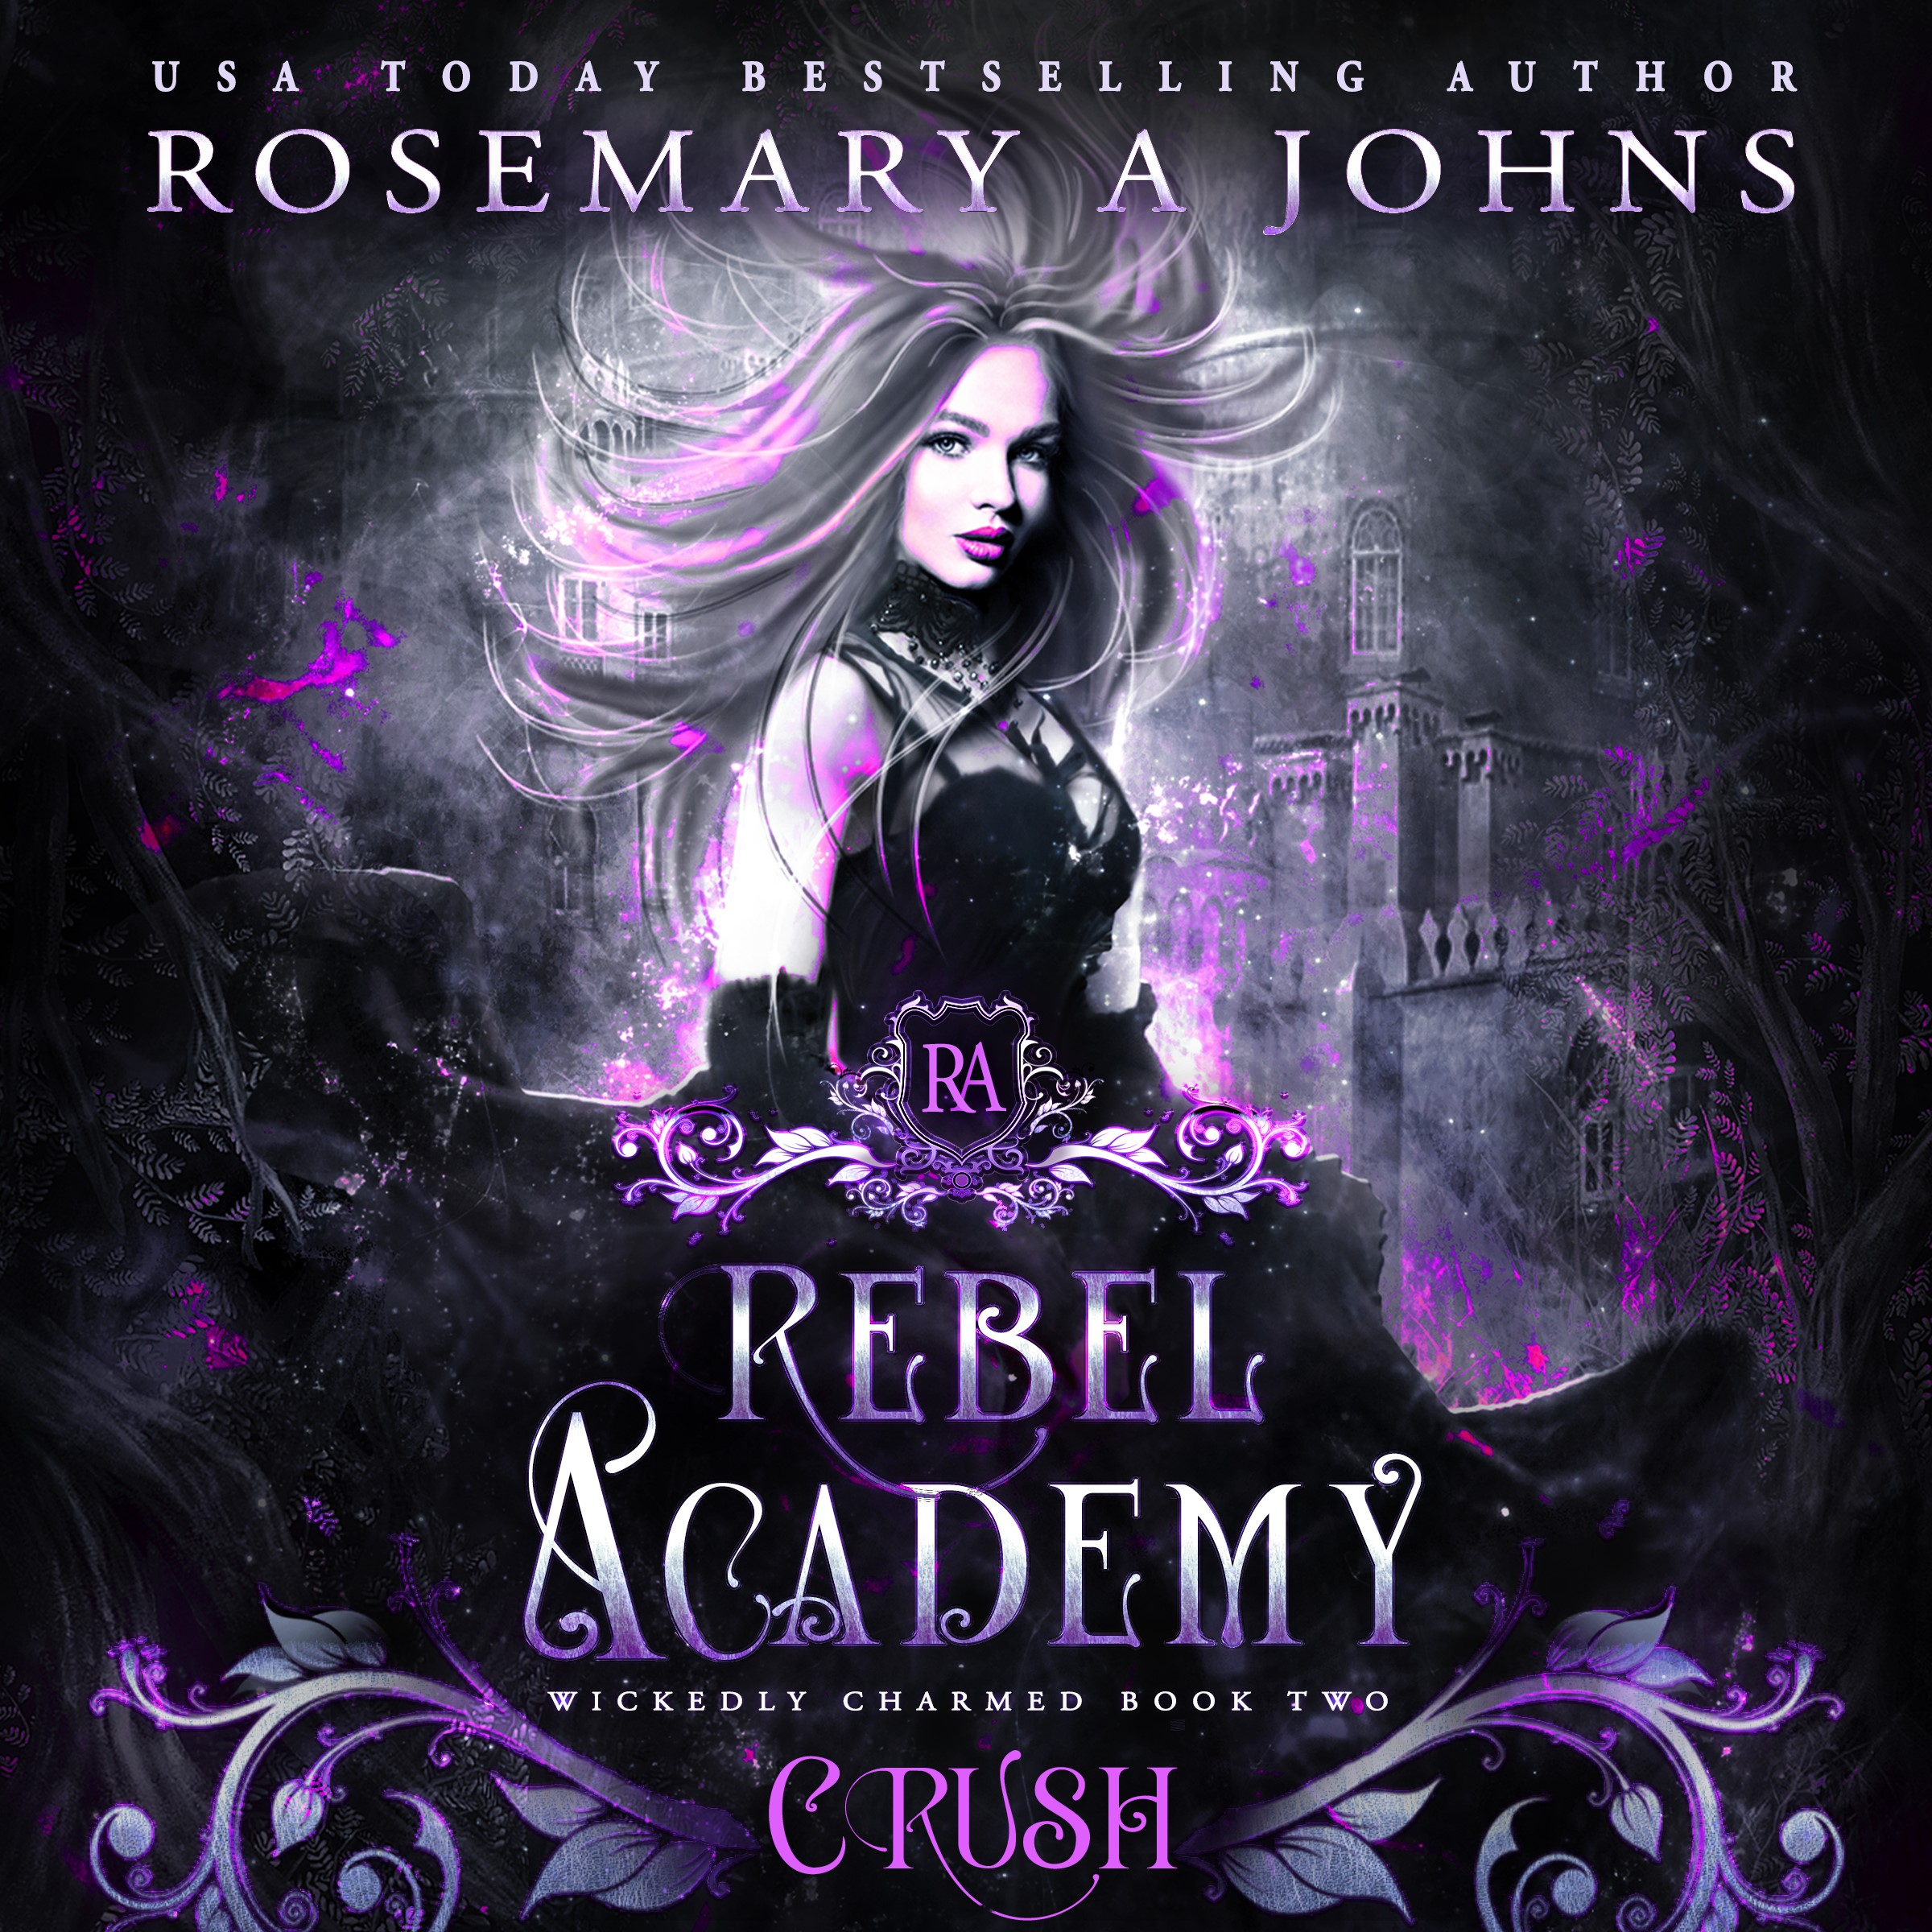 rosemary-a-johns.wickedly-charmed.rebel-academy.crush_.audio_.fc_